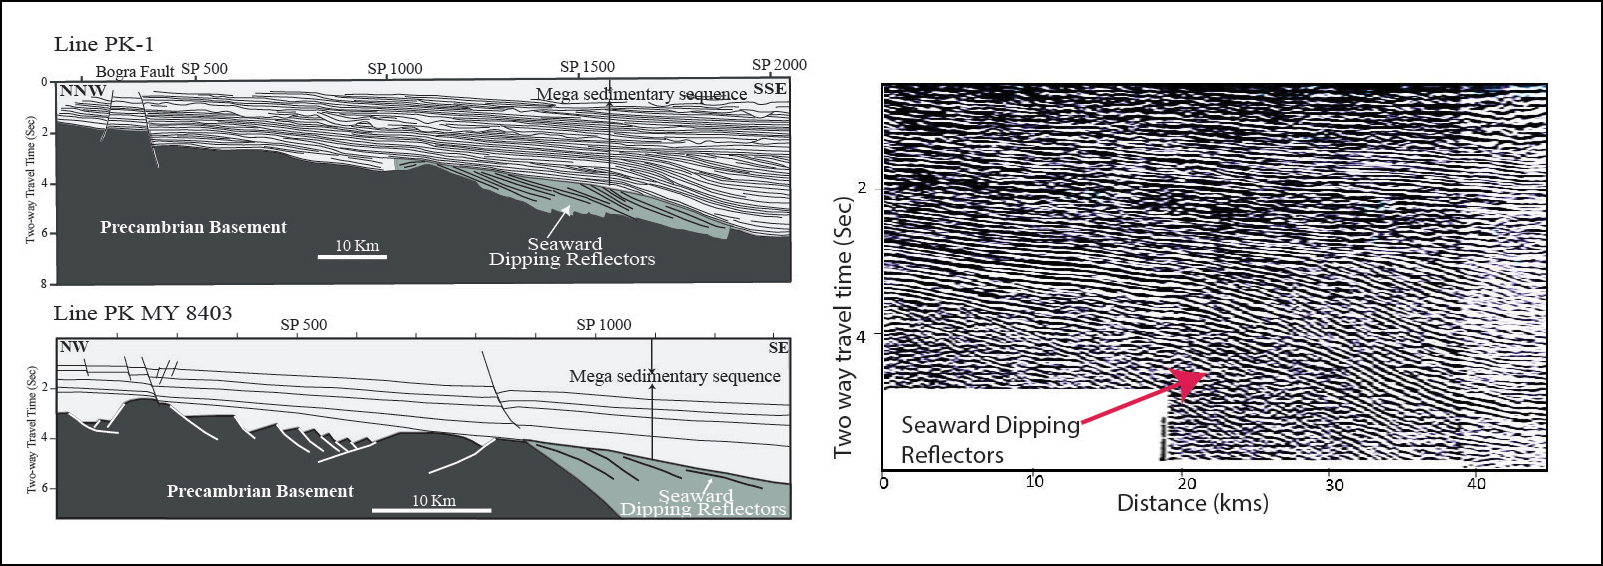 Diagram showing seaward dipping reflectors (SDR) in Bangladesh (right) and tracings of two seismic lines showing SDRs